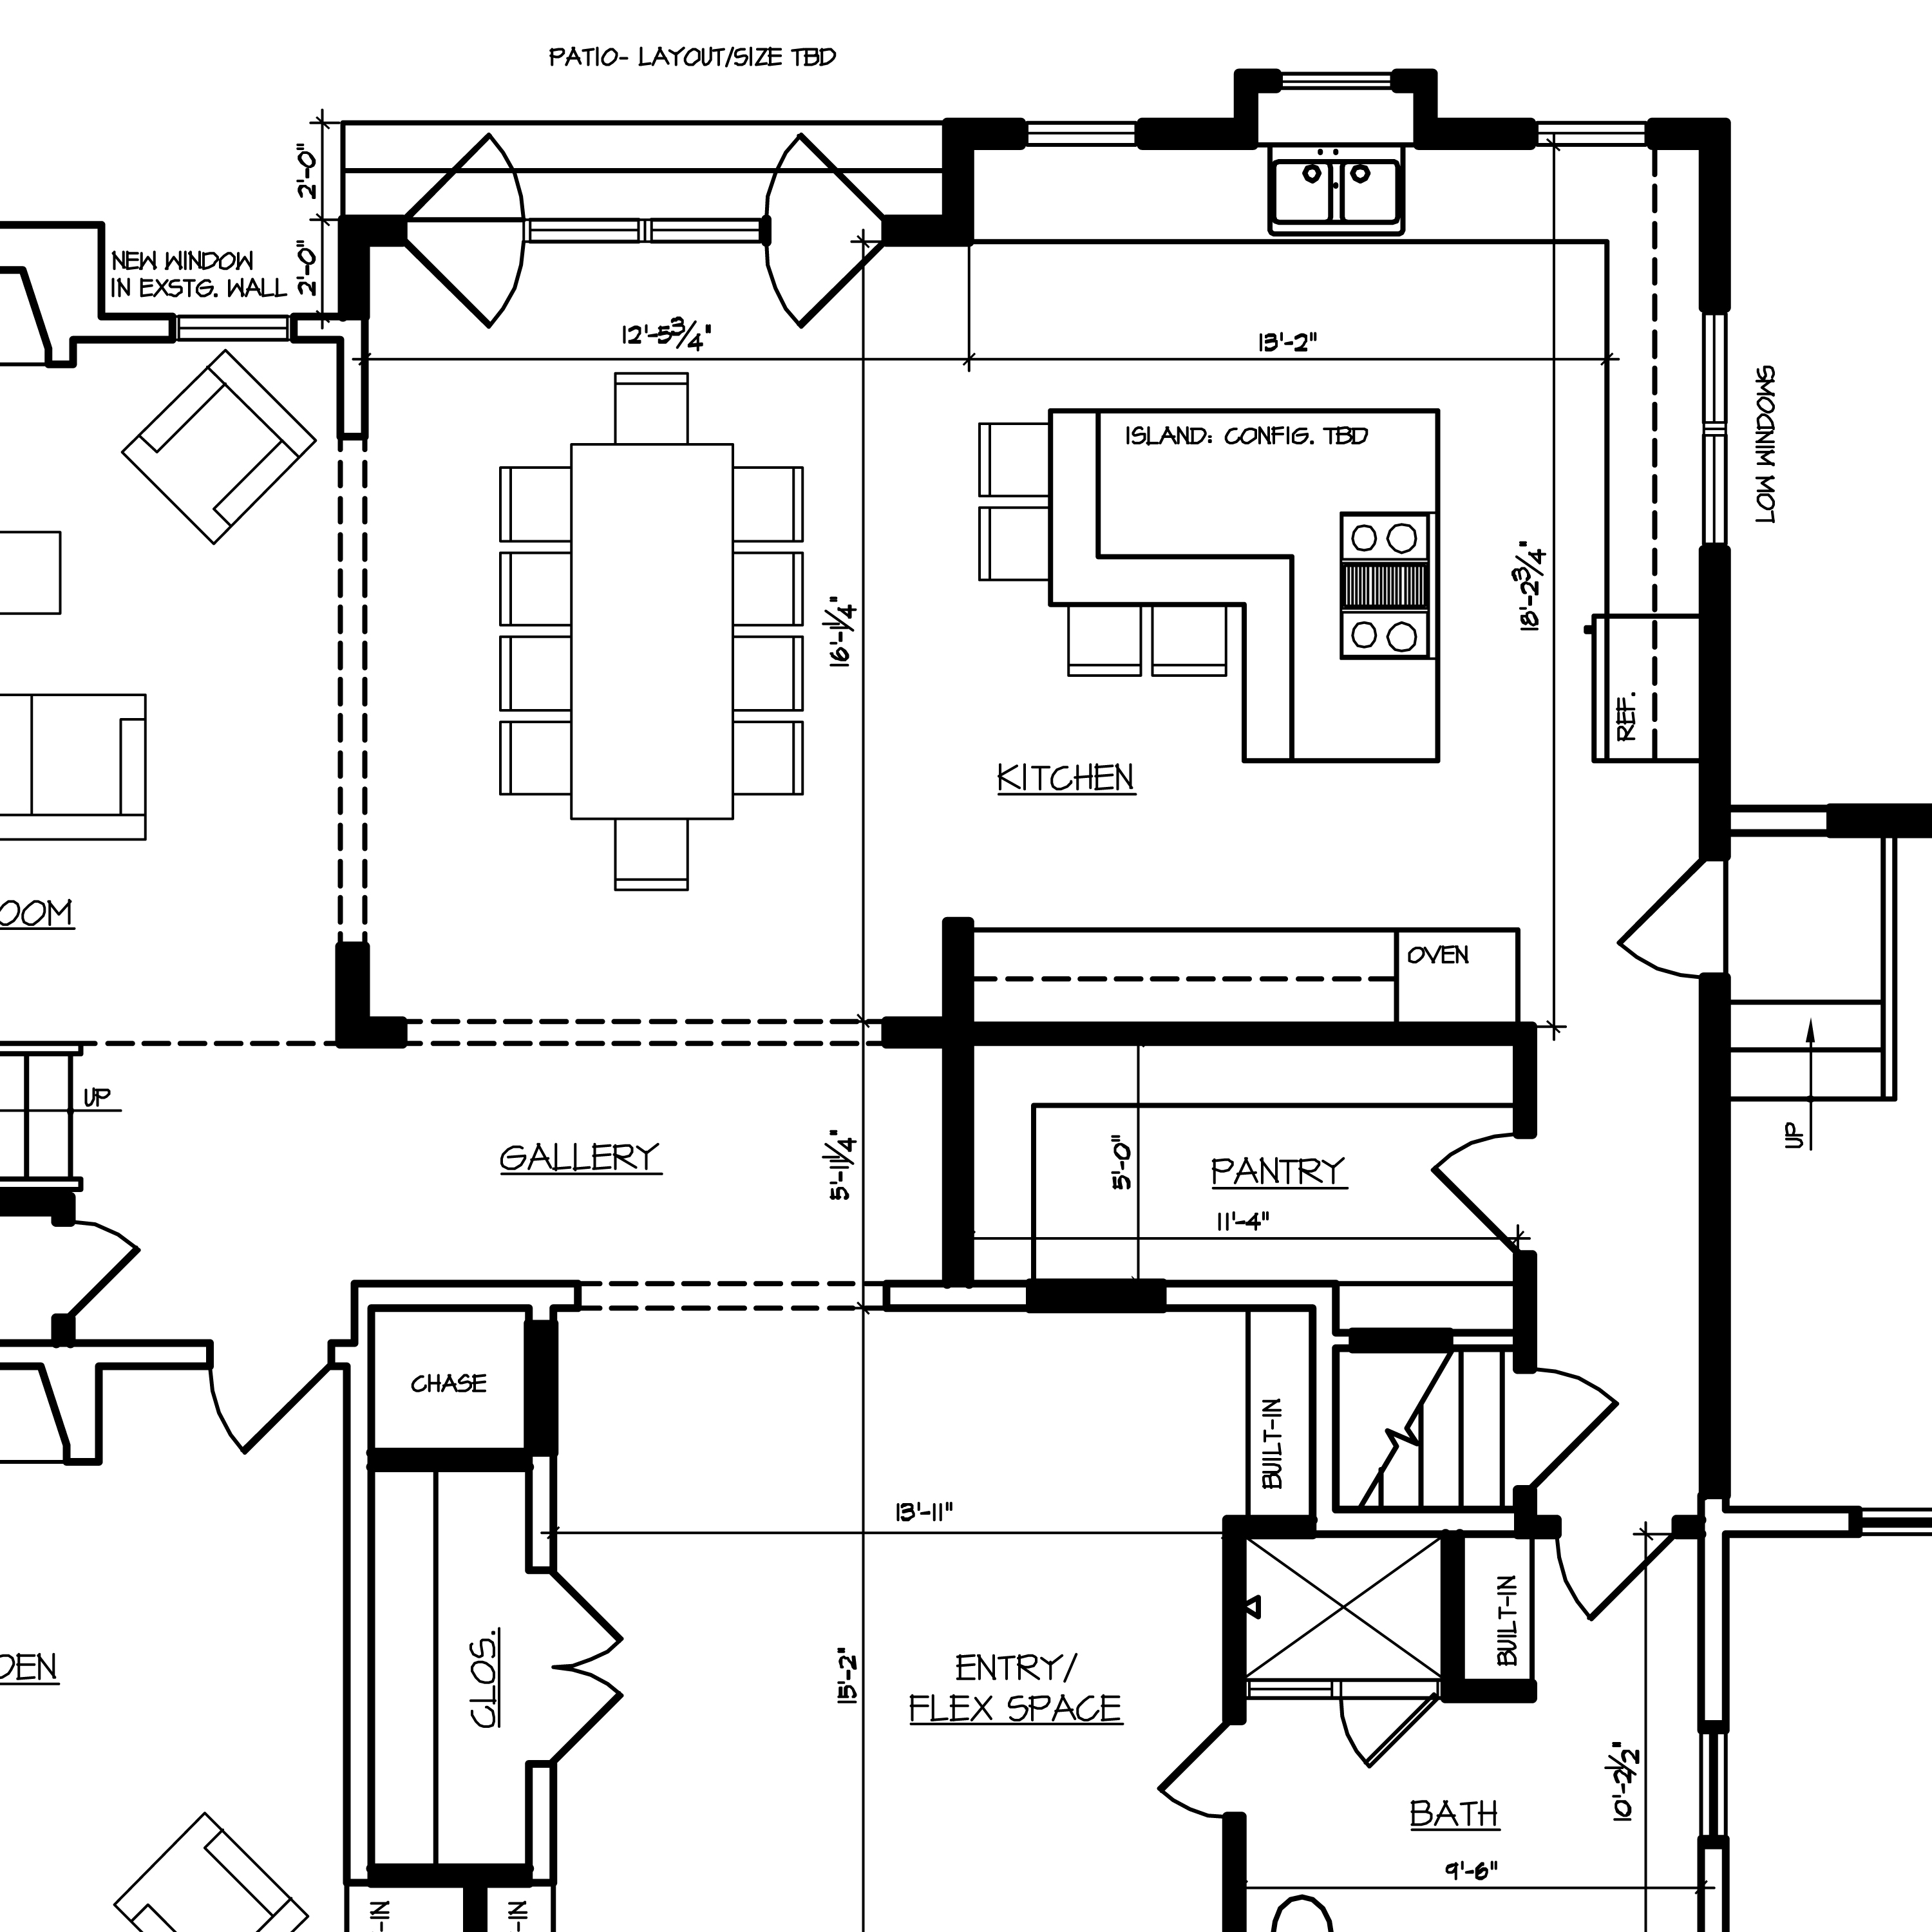 Easy architectural drawing at getdrawings free for personal